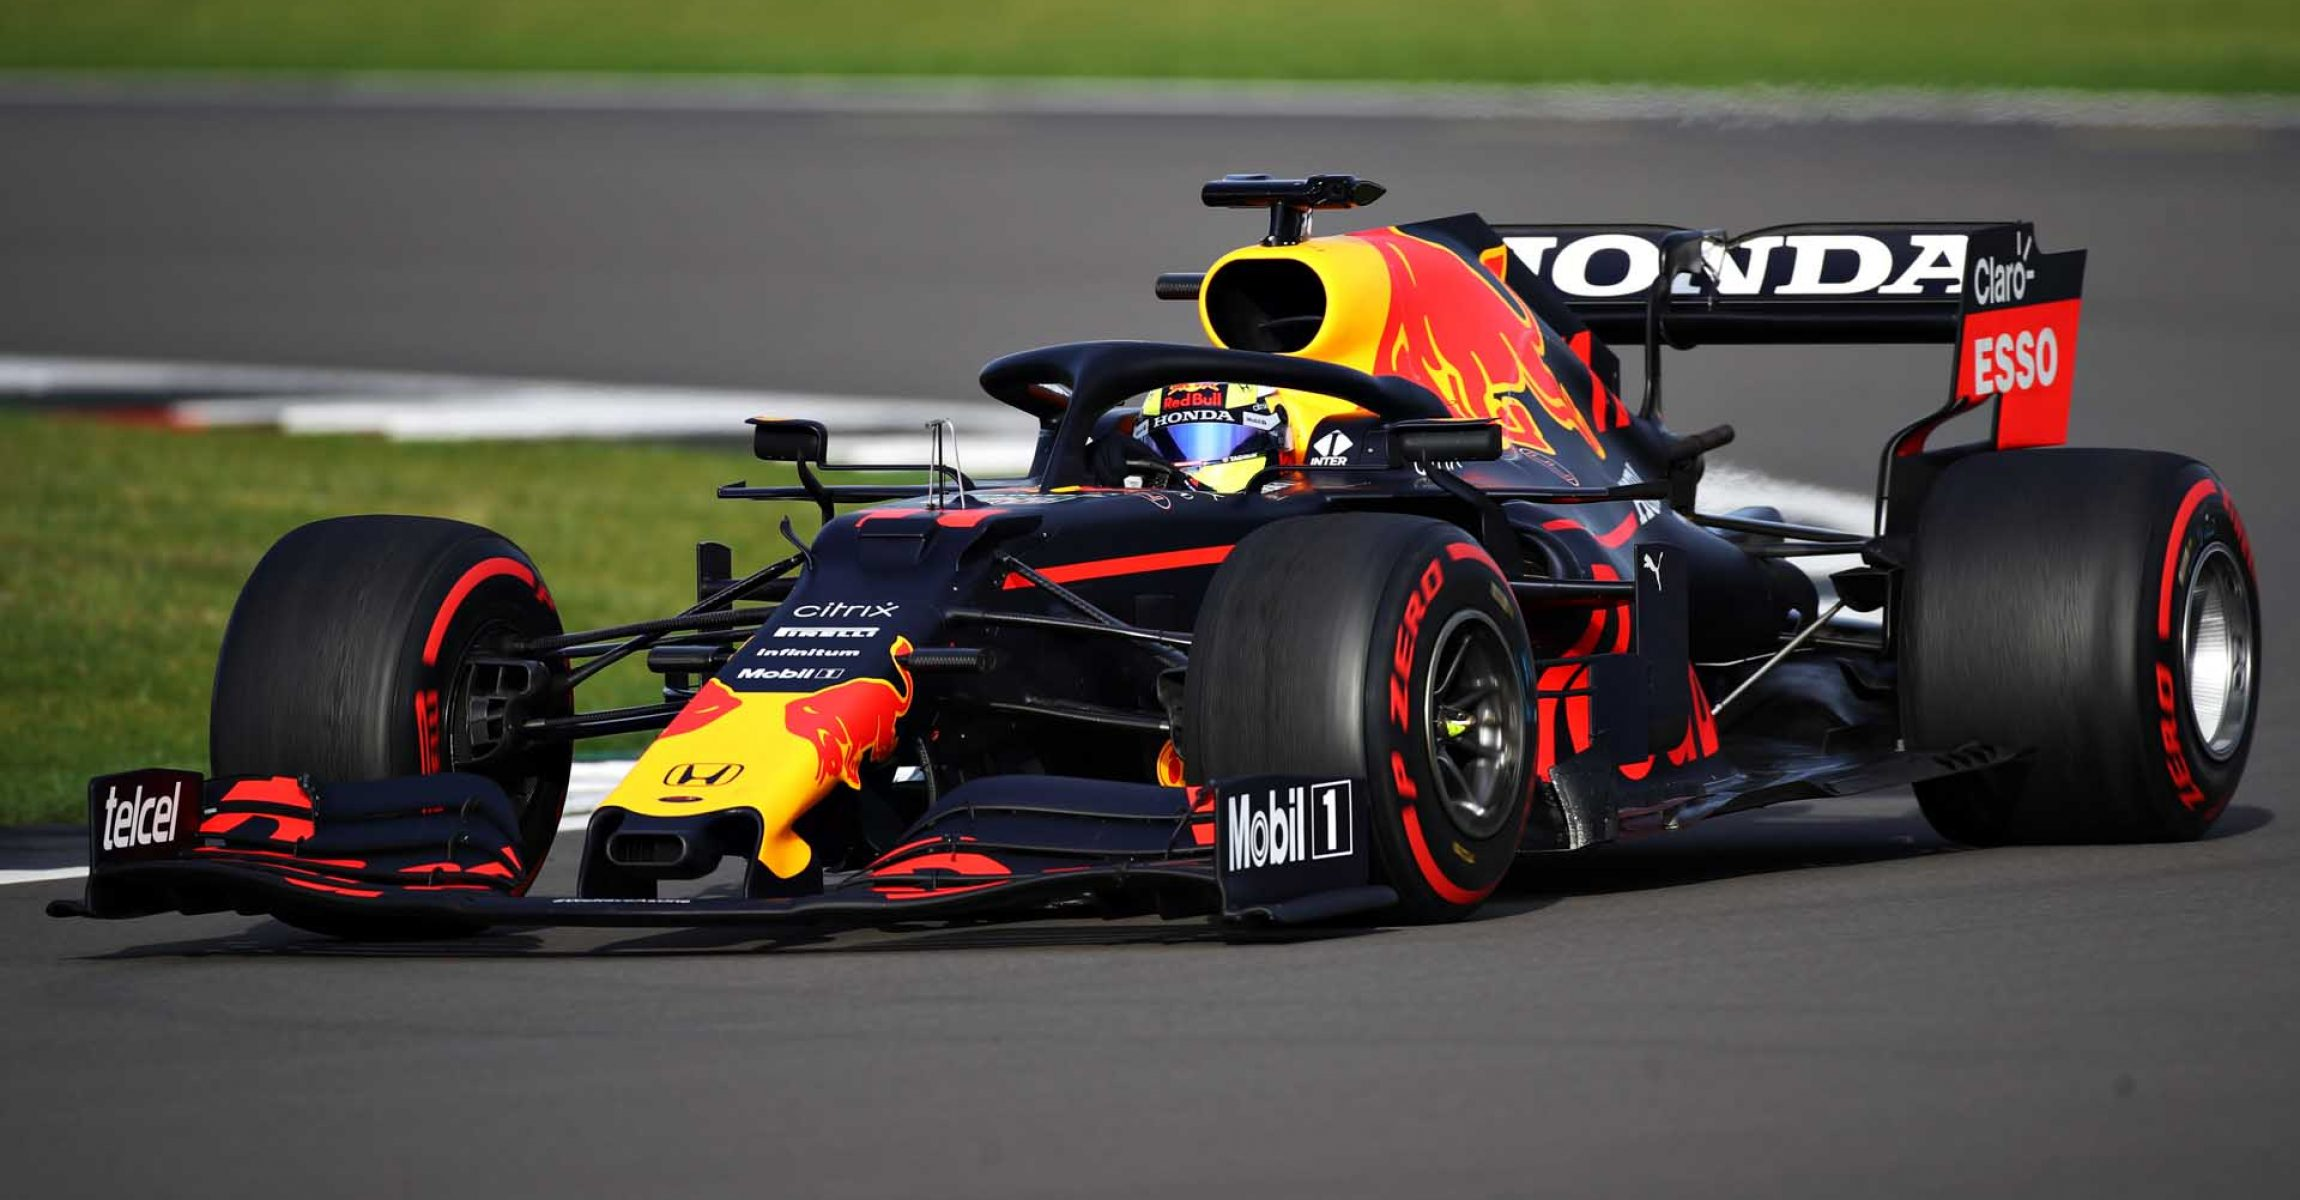 NORTHAMPTON, ENGLAND - FEBRUARY 23: Sergio Perez of Mexico driving the (11) Red Bull Racing RB15 Honda at Silverstone on February 23, 2021 in Northampton, England. (Photo by Bryn Lennon/Getty Images for Red Bull Racing)